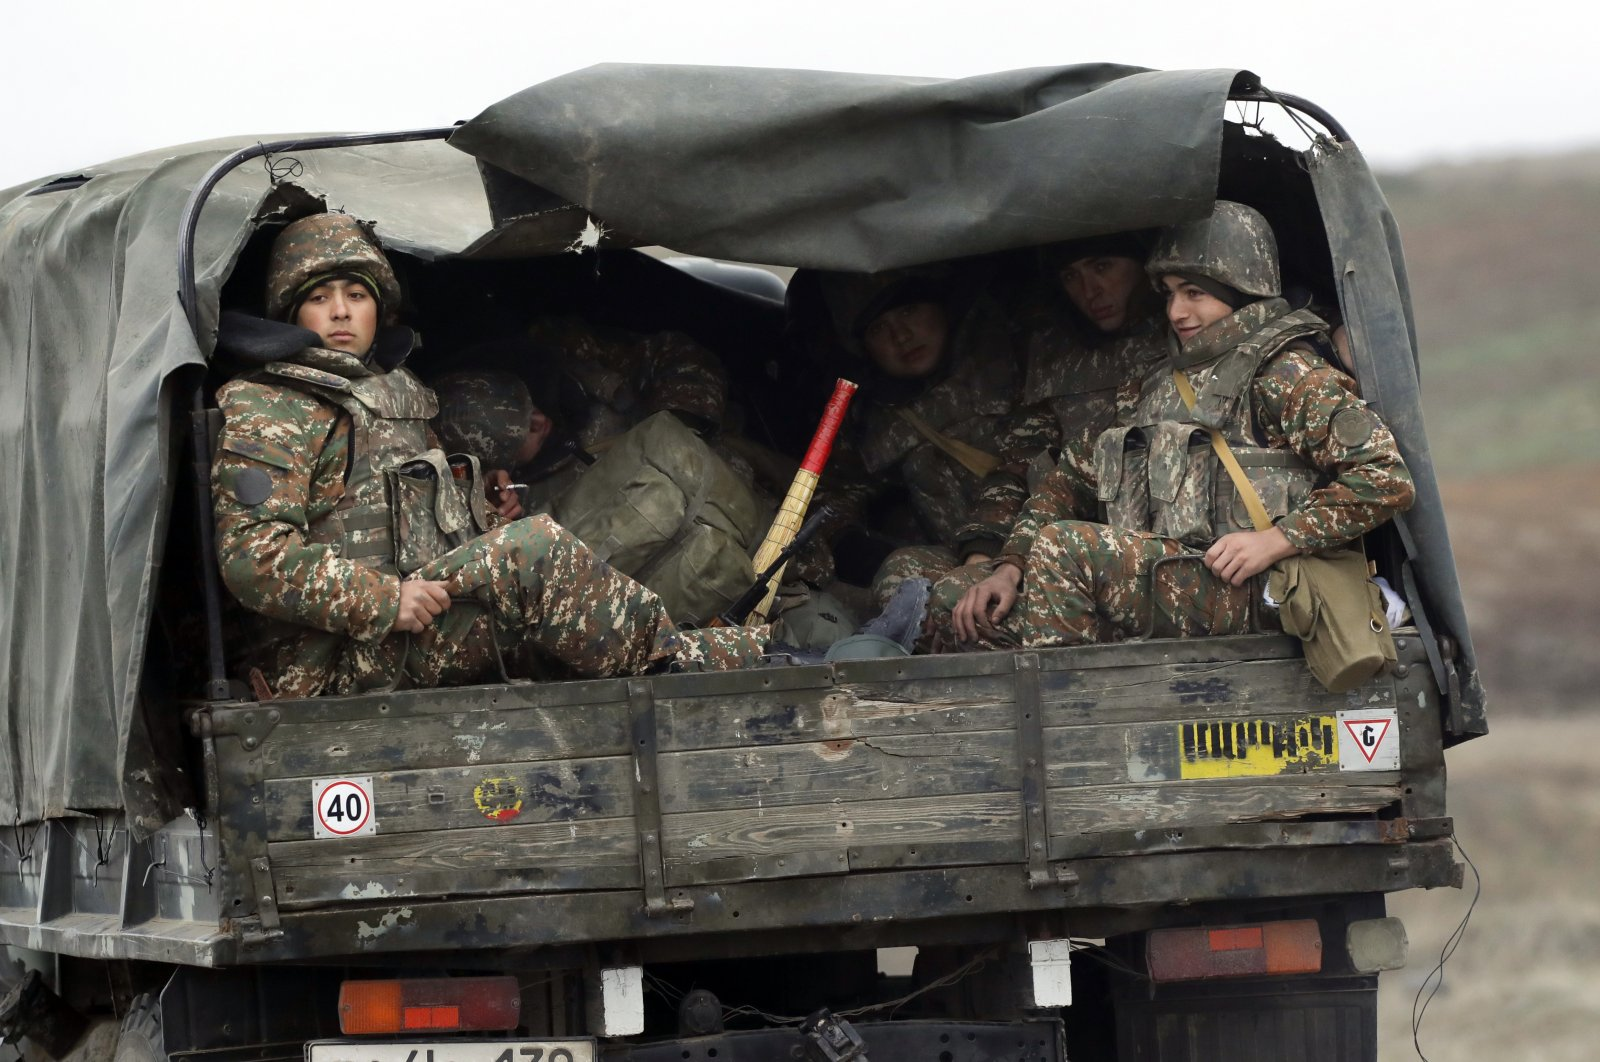 Armenian soldiers sit in a military truck on a road during the withdrawal of Armenian troops from the occupied region of Nagorno-Karabakh, Thursday, Nov. 19, 2020. (AP Photo)